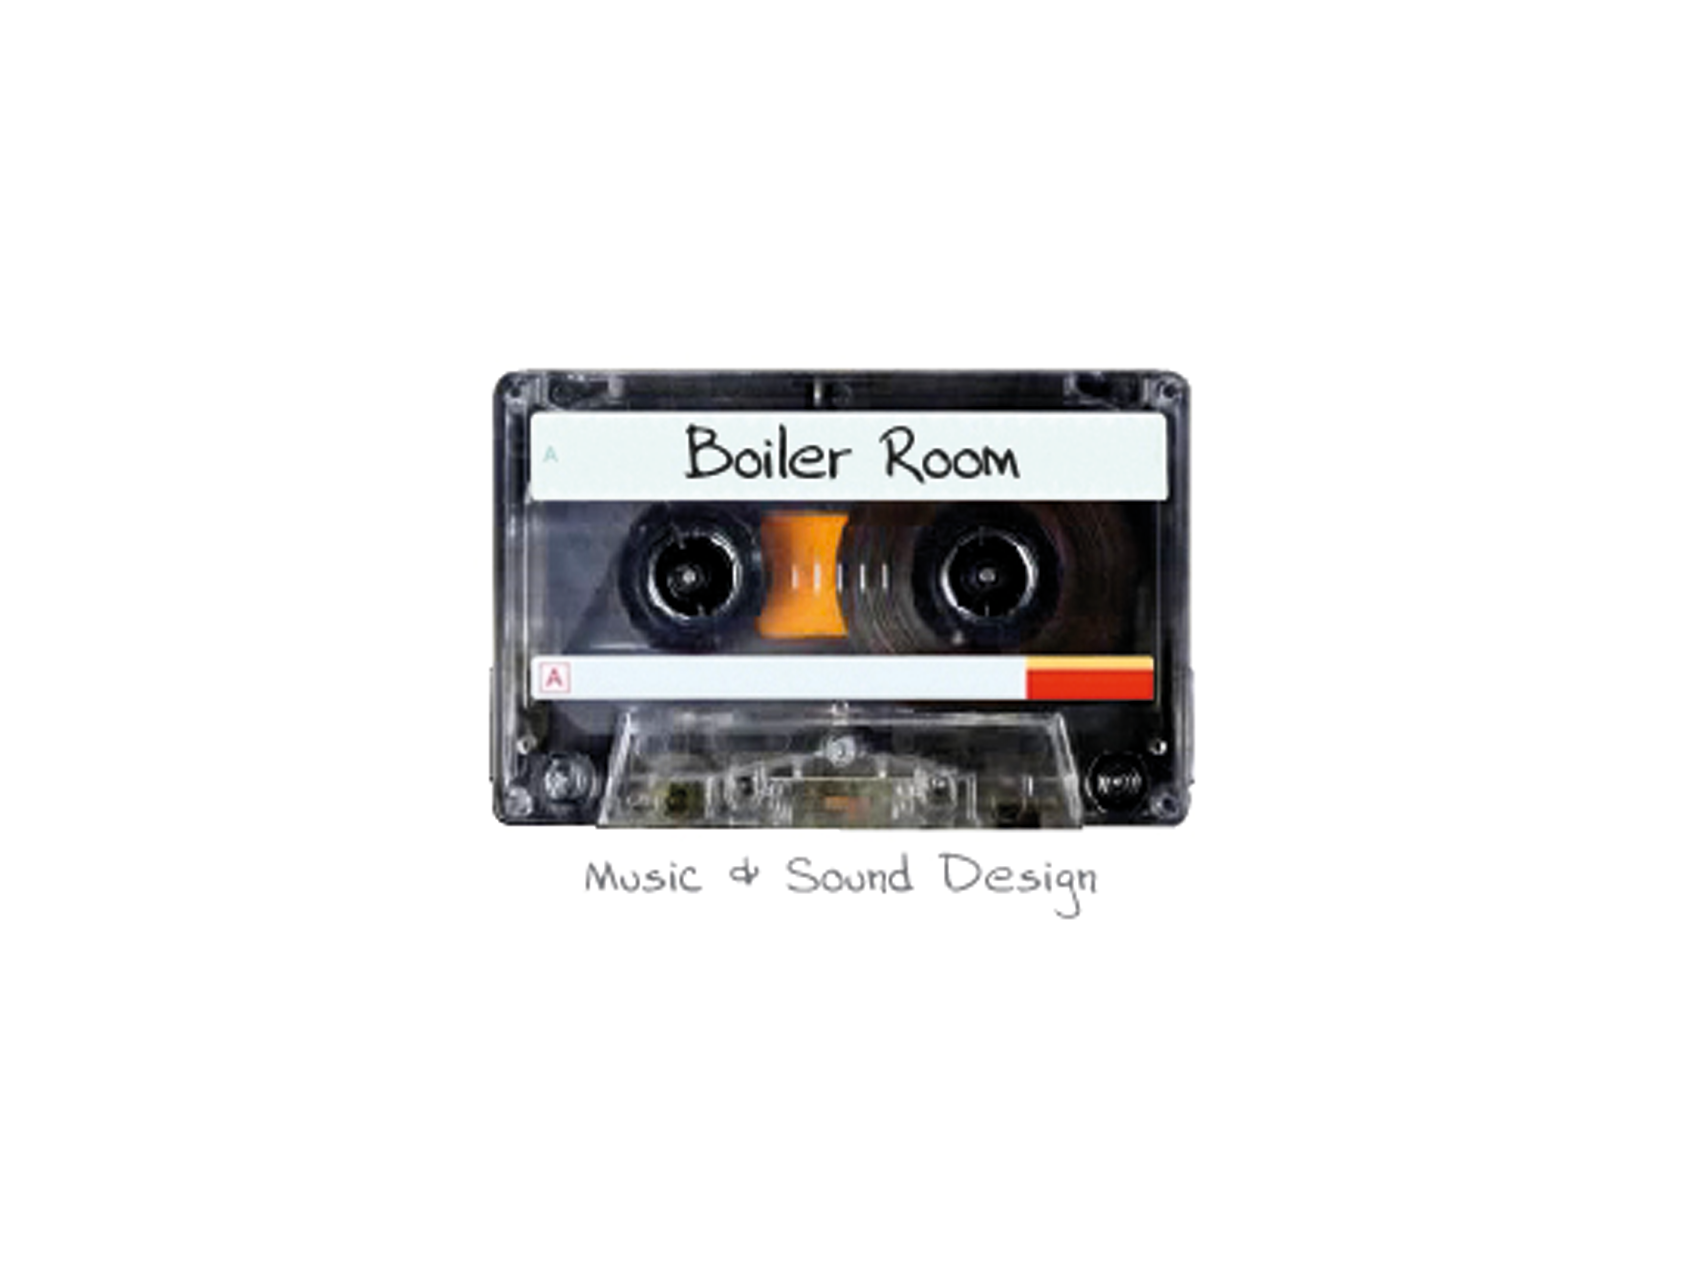 Boiler Room Music and Sound Design cassette tape logo